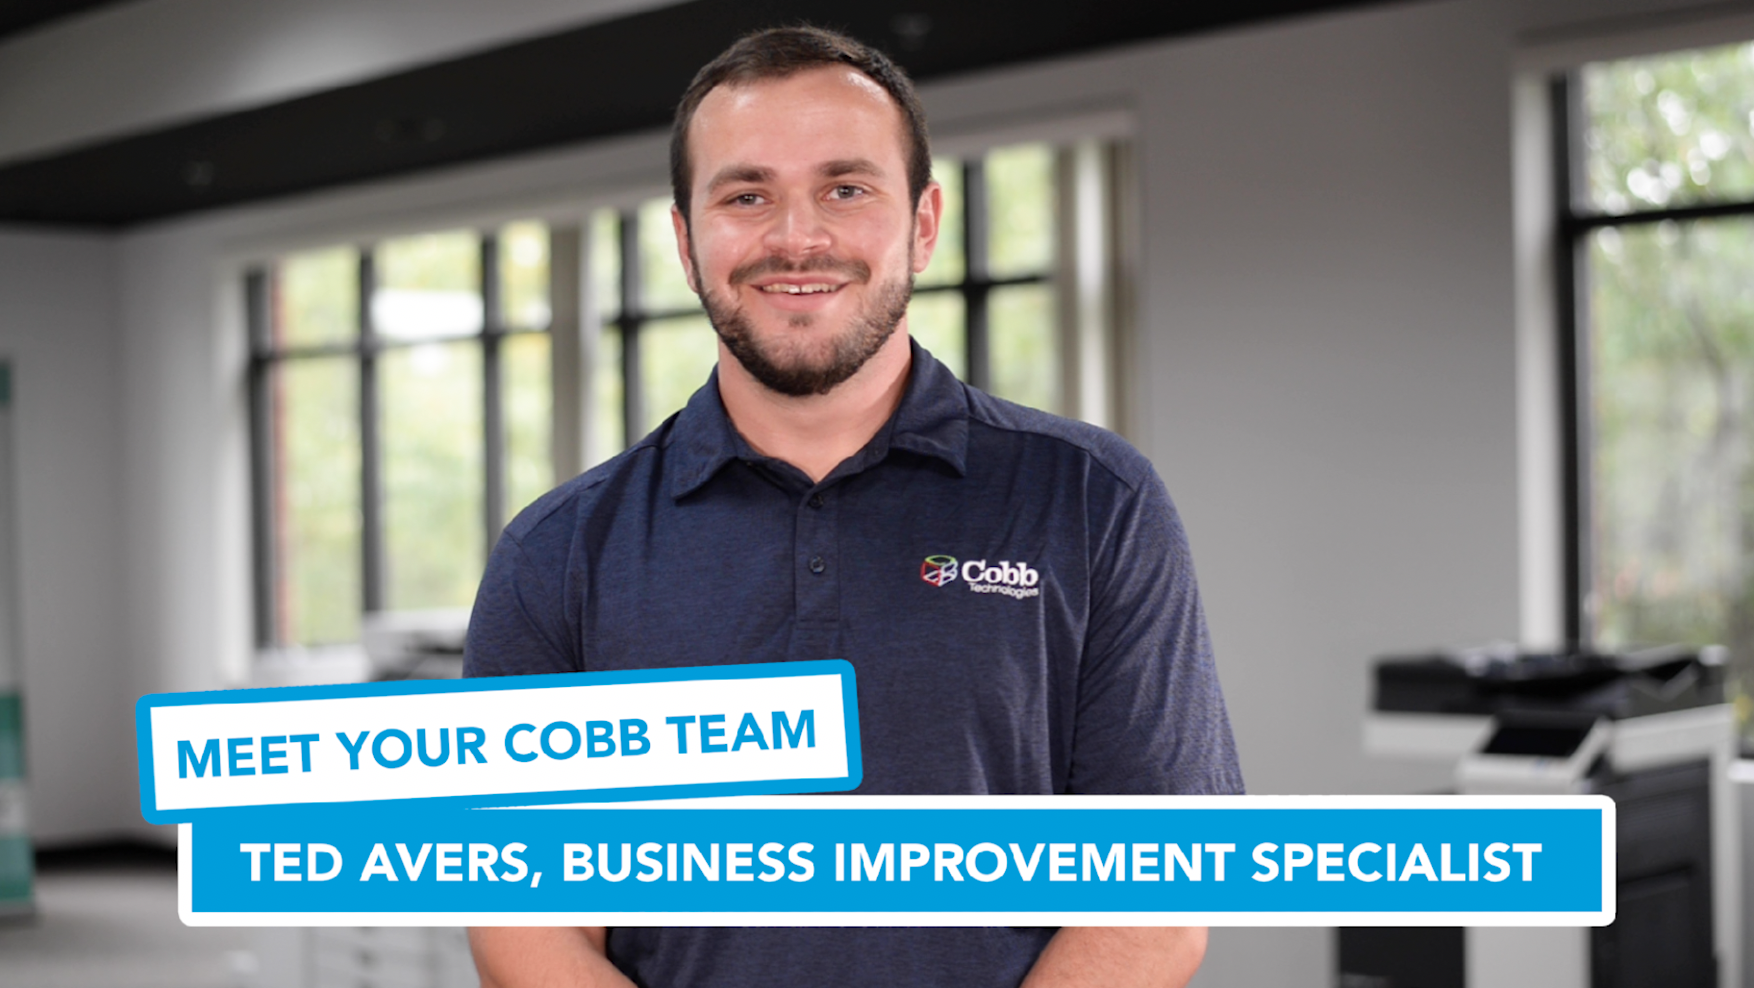 Meet Your Cobb Team Ted Avers, Business Improvement Specialist